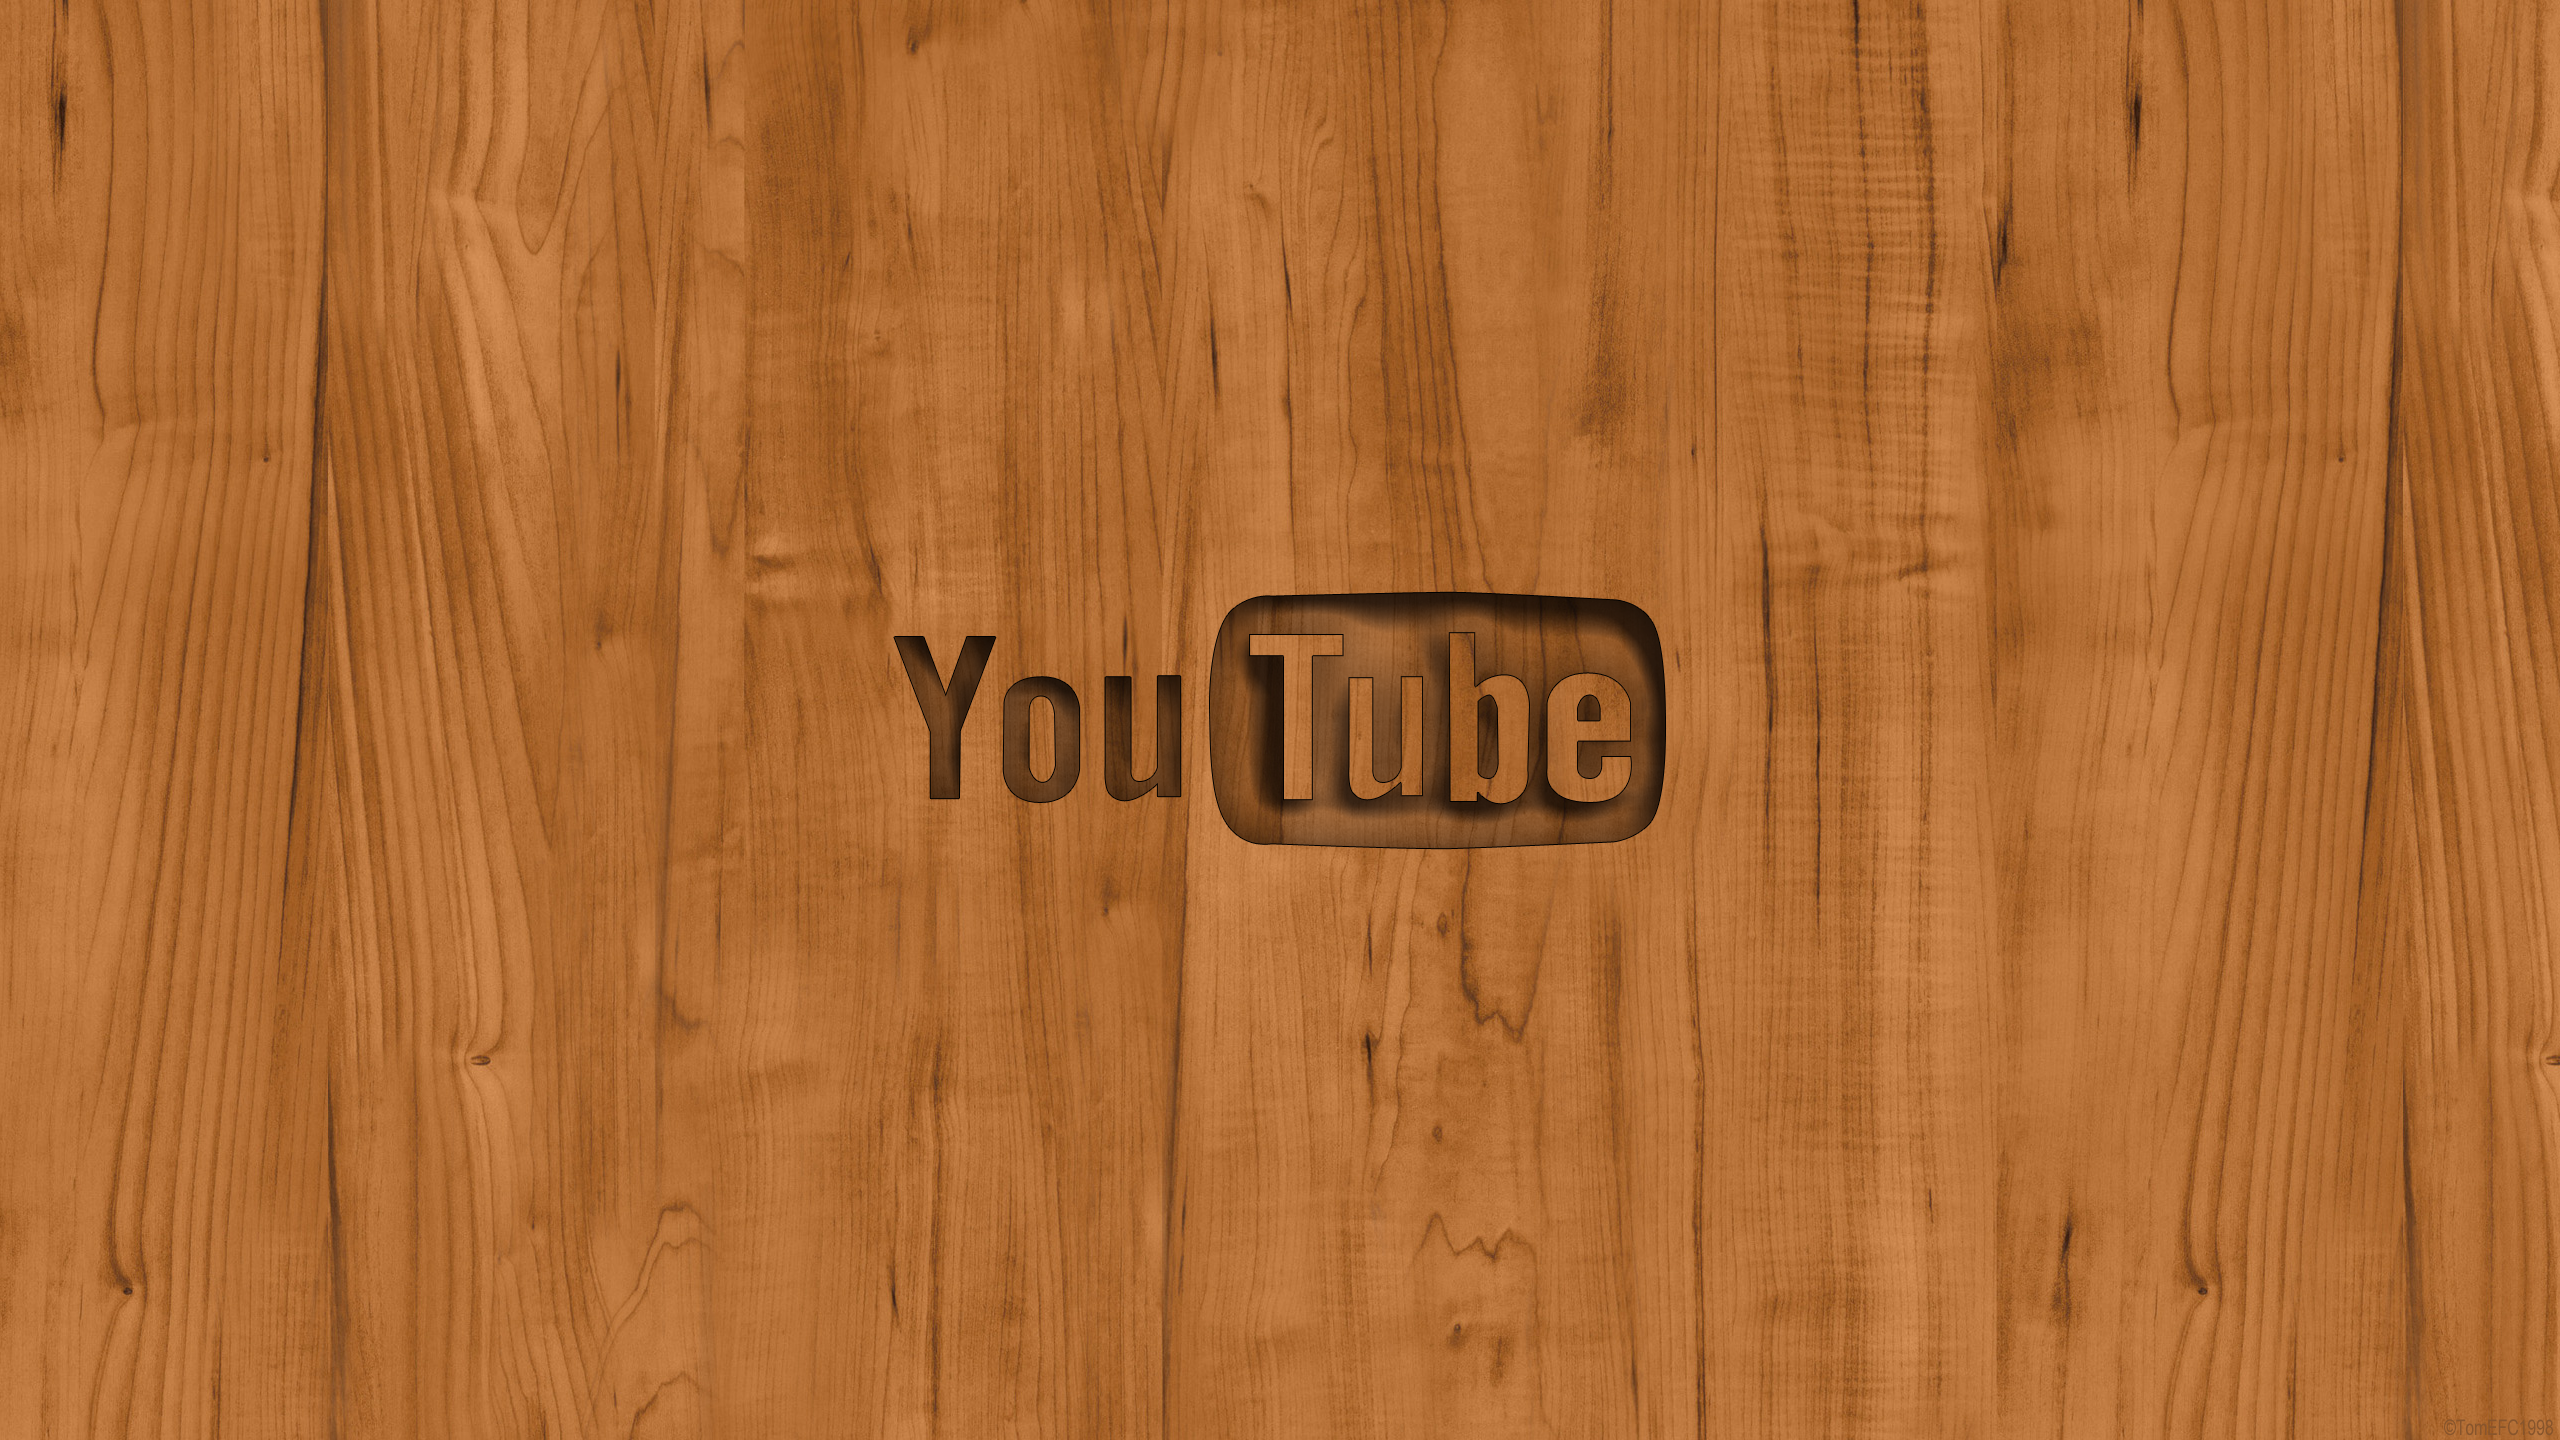 YouTube Backgrounds